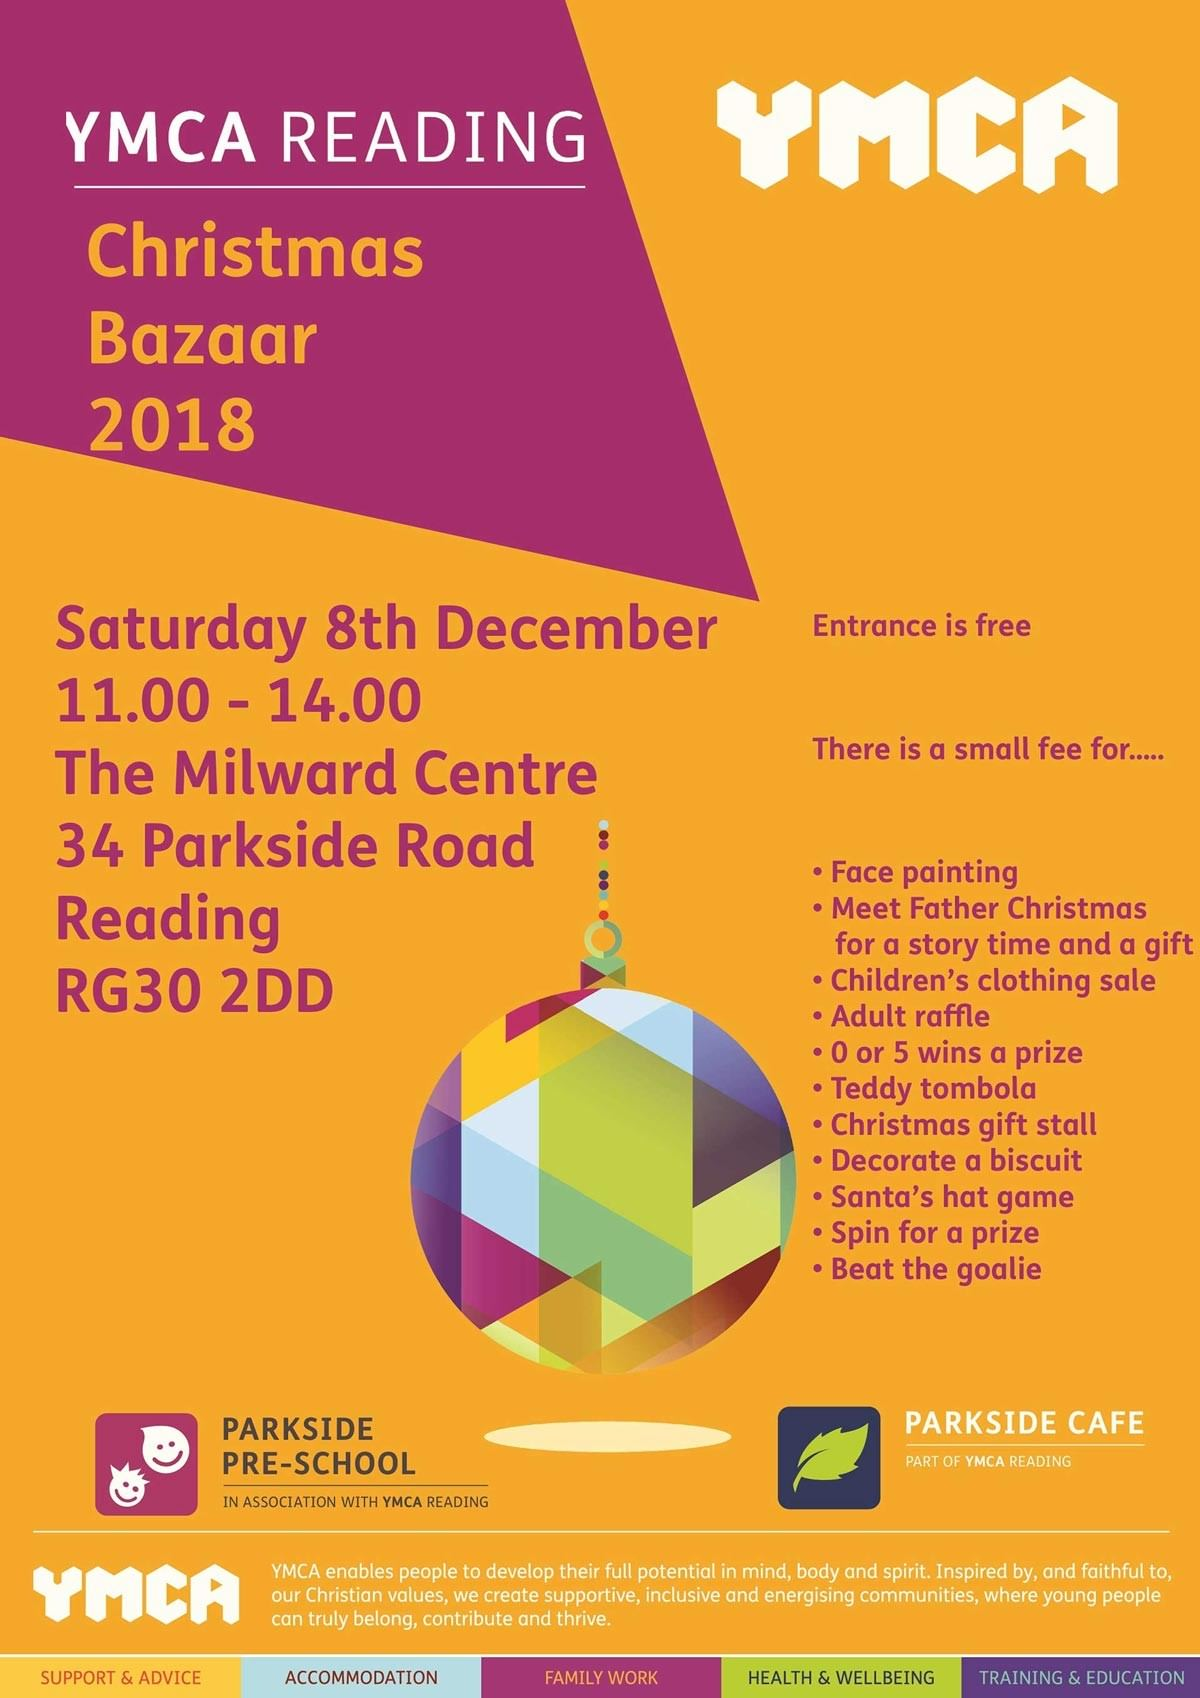 YMCA Reading Christmas Bazaar 2018